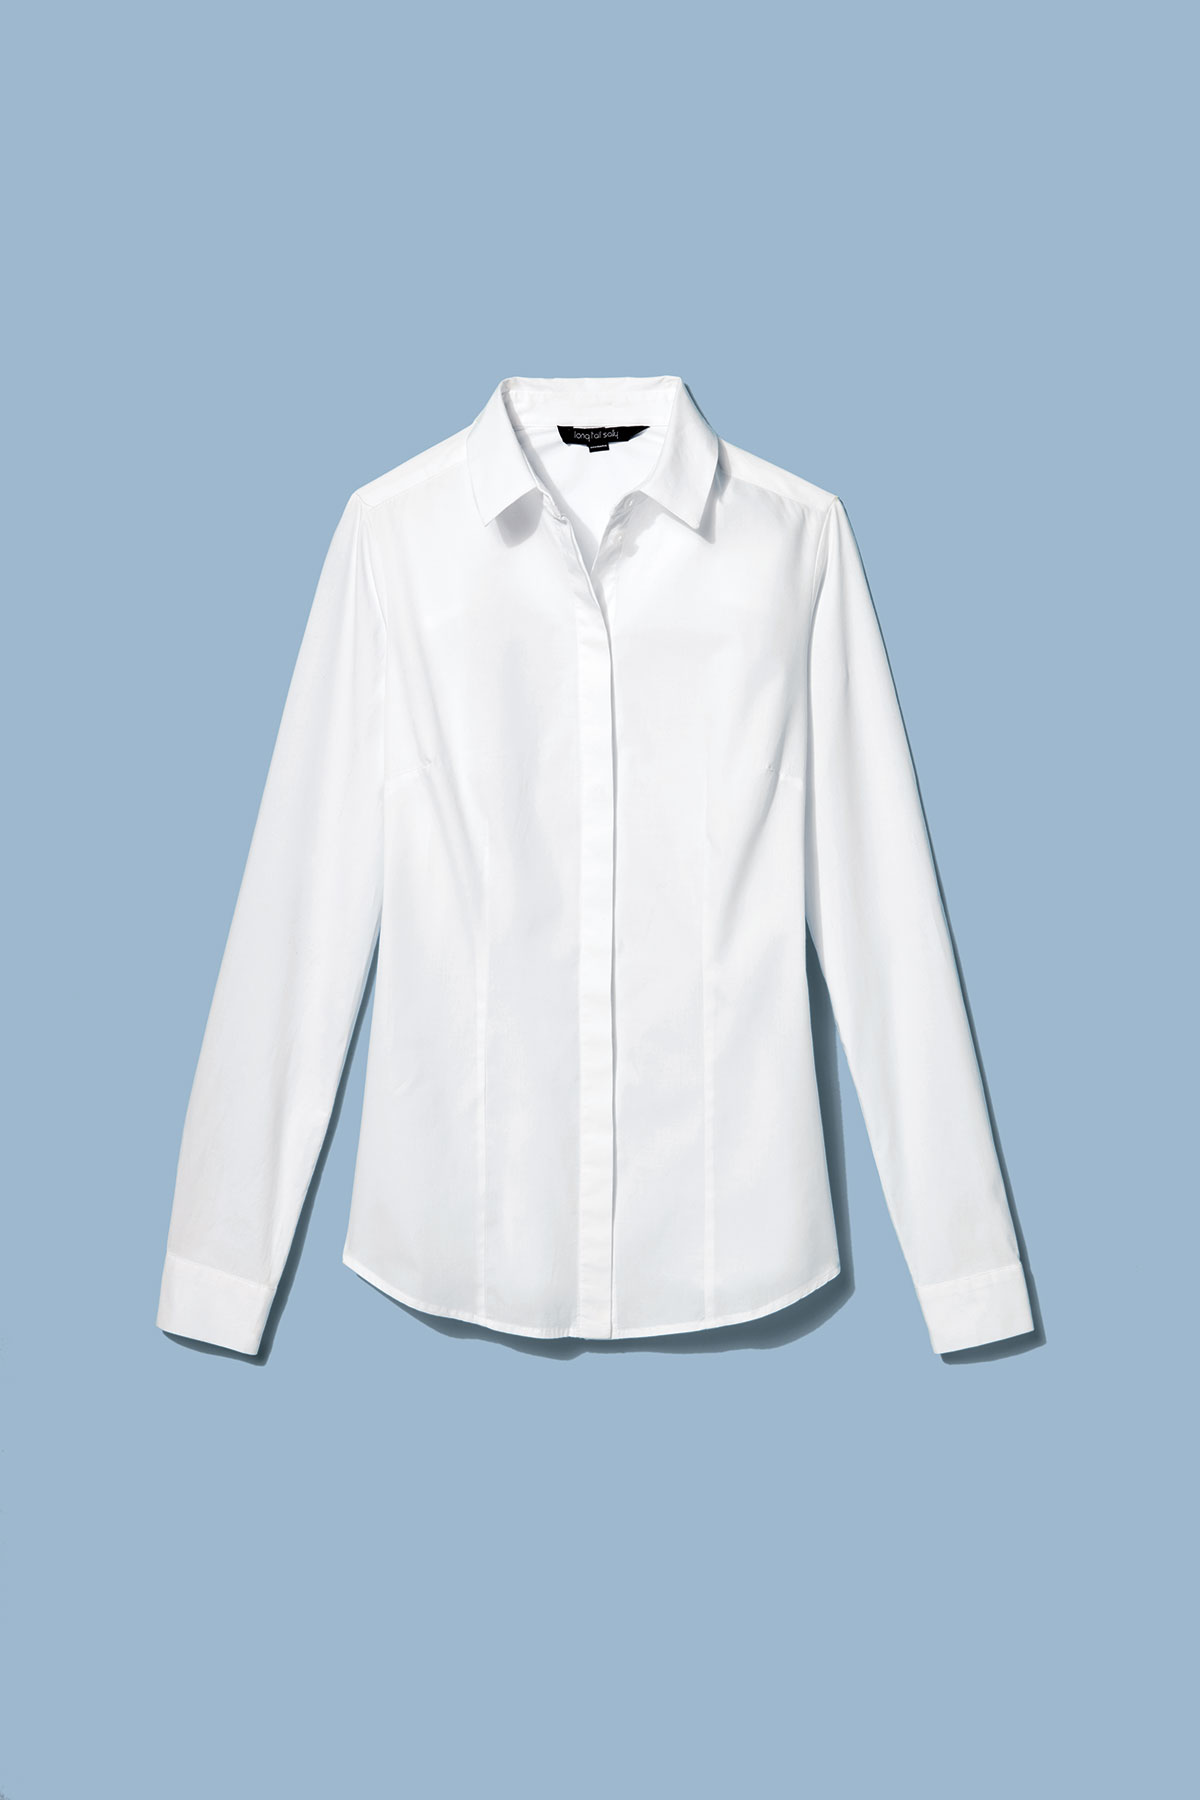 2d594ec45484 The 10 Best White Shirts We've Ever Worn | Real Simple